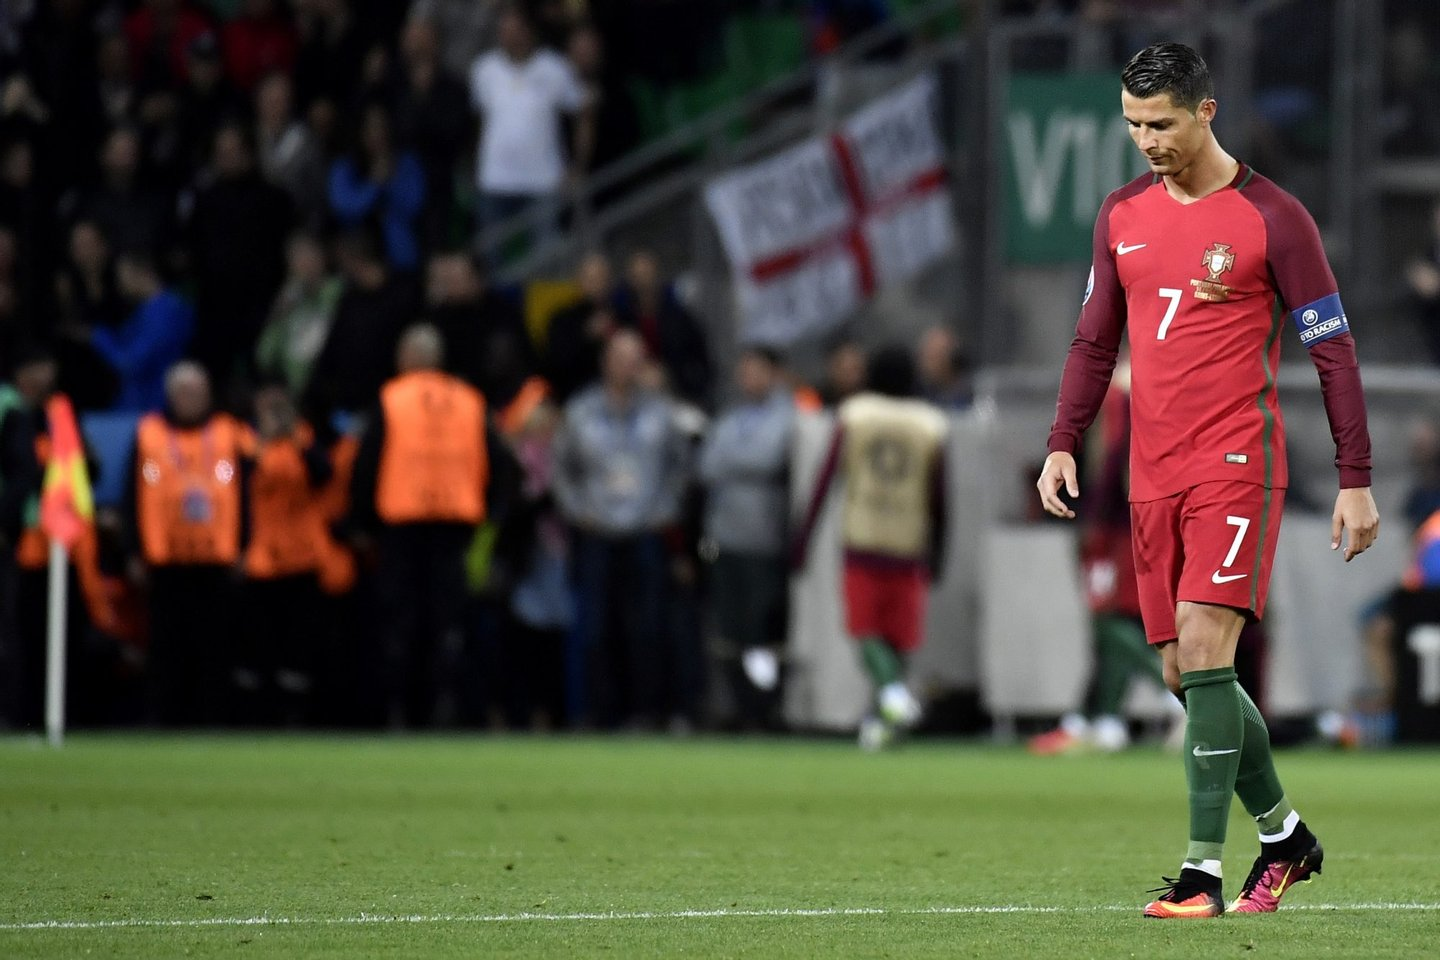 Portugal's forward Cristiano Ronaldo walks on the pitch during the Euro 2016 group F football match between Portugal and Iceland at the Geoffroy-Guichard stadium in Saint-Etienne on June 14, 2016. / AFP / jeff pachoud (Photo credit should read JEFF PACHOUD/AFP/Getty Images)